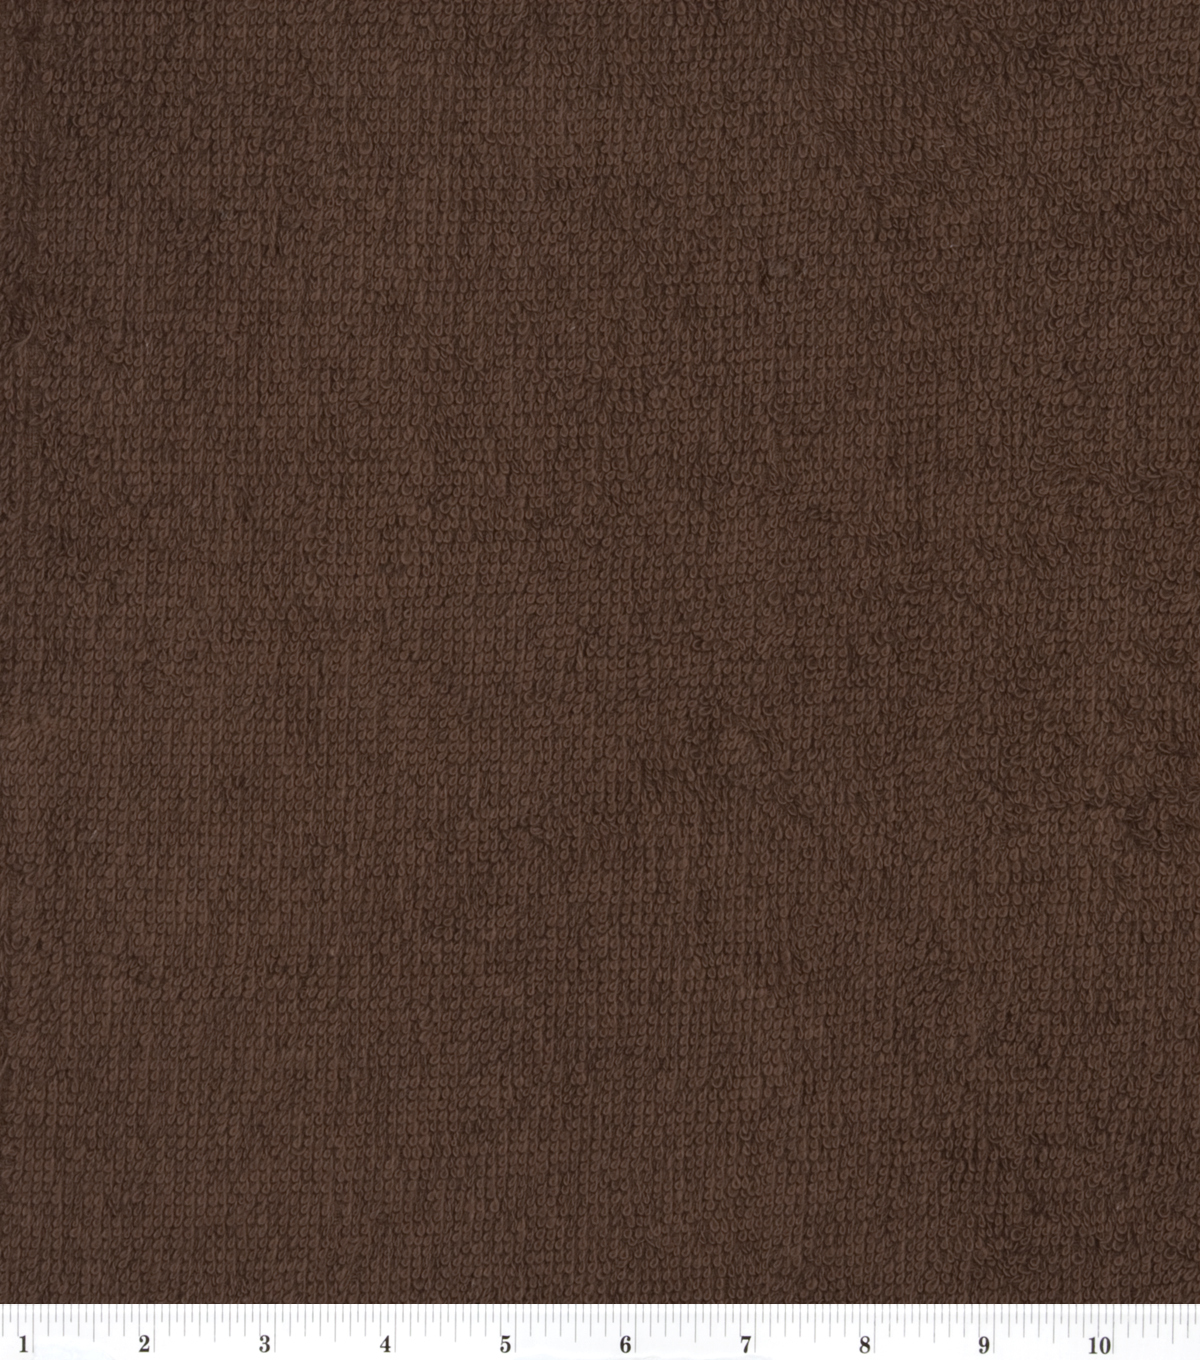 Cotton Terry Cloth Fabric-Solids, Brown